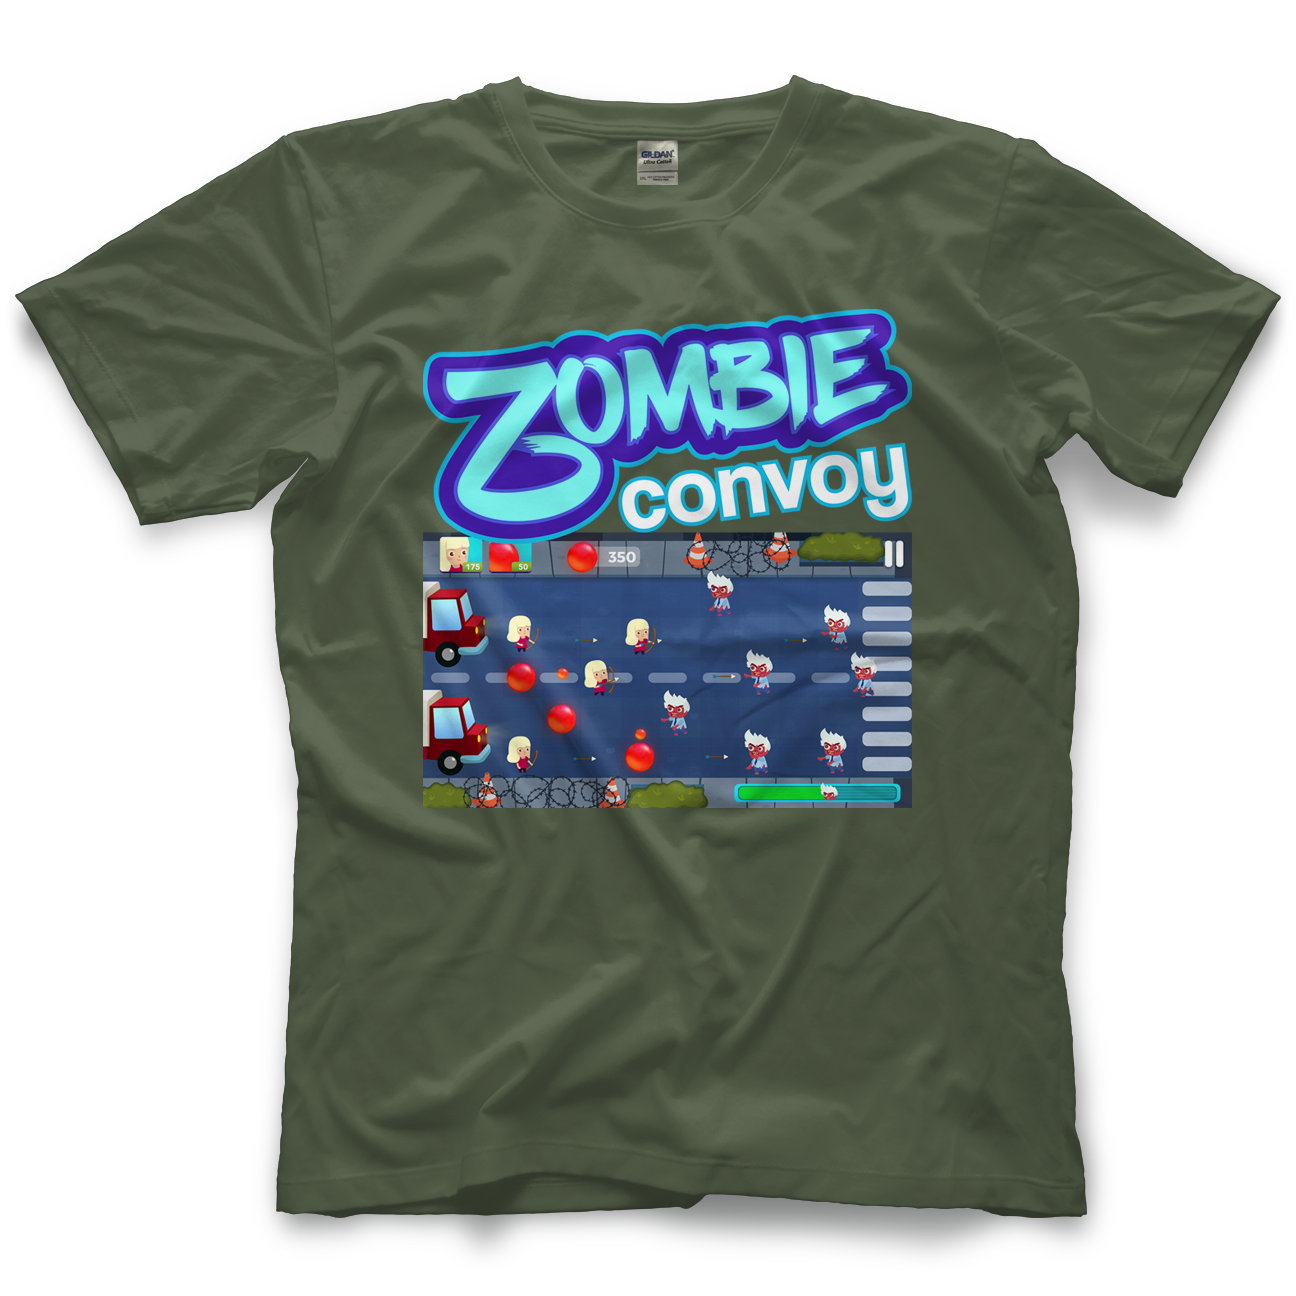 Zombie convoy we are being over run t shirt for I run for meg shirts